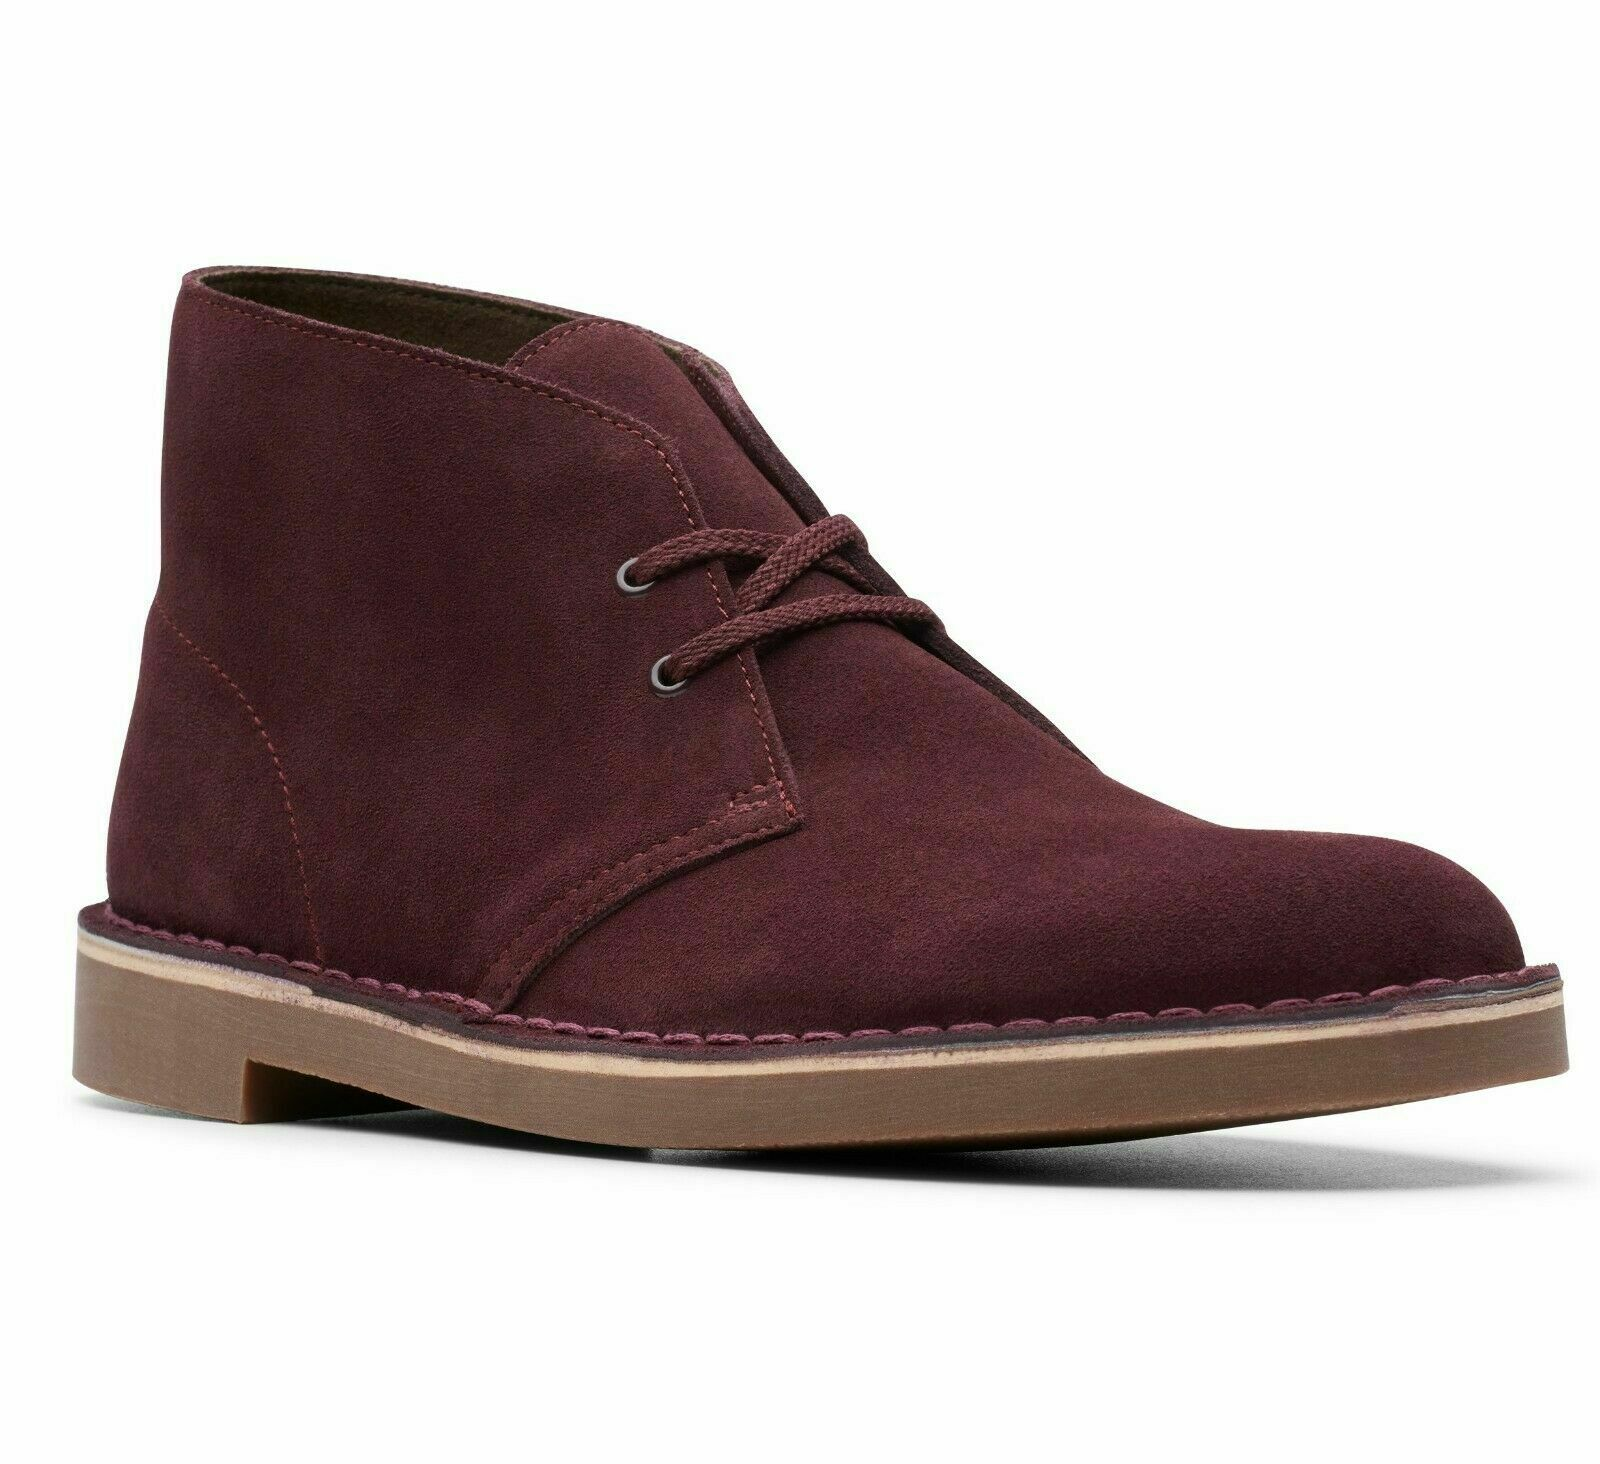 Clarks Men's Bushacre 2 Wine Suede Classic Desert Style Boot